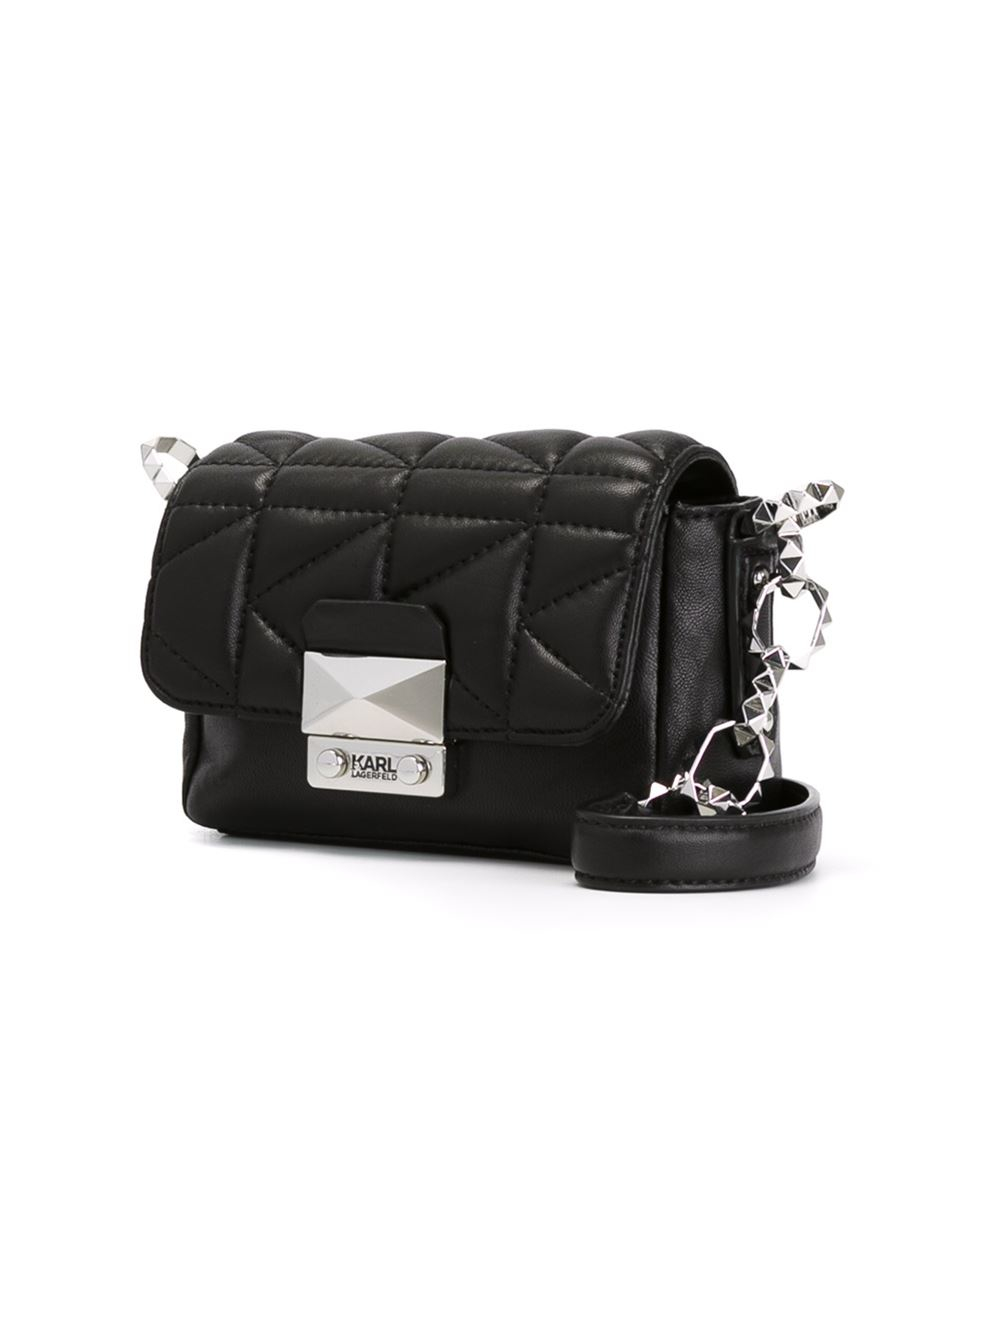 2c2d0d3a0e Karl Lagerfeld Mini Quilted Cross-Body Bag in Black - Lyst